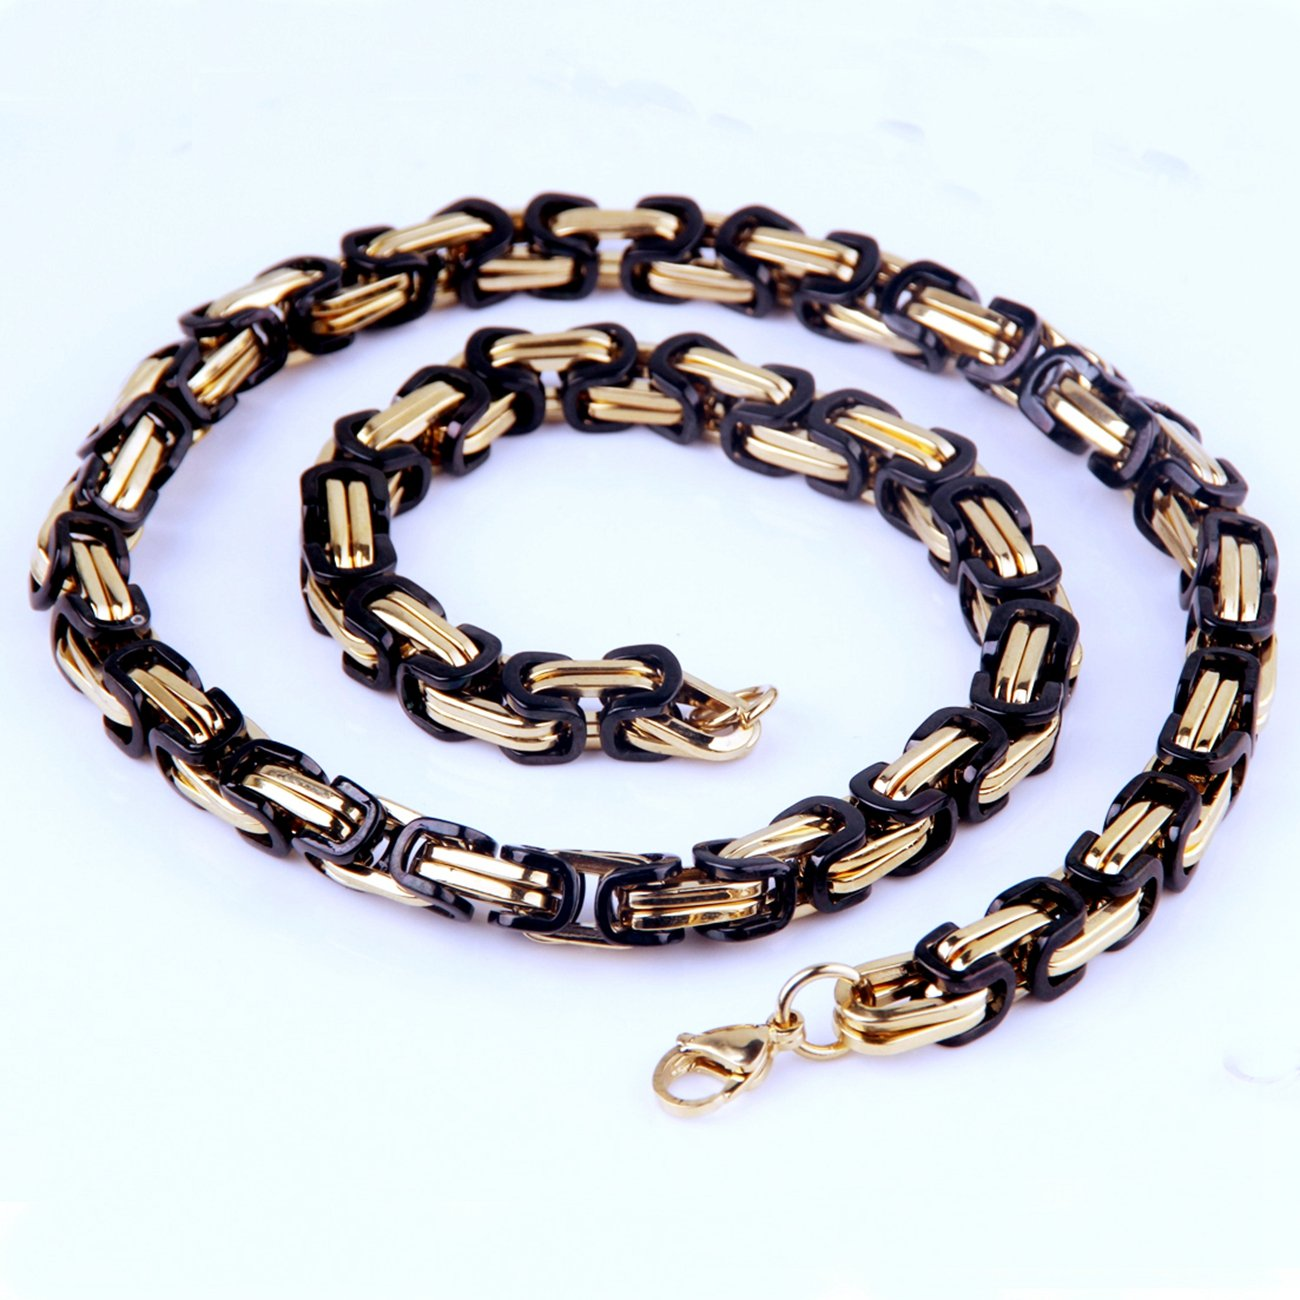 Innovative jewelry 5mm Beauty Black Gold Tone Elegance Mens Stainless Steel Byzantine Chain Necklace,16-40